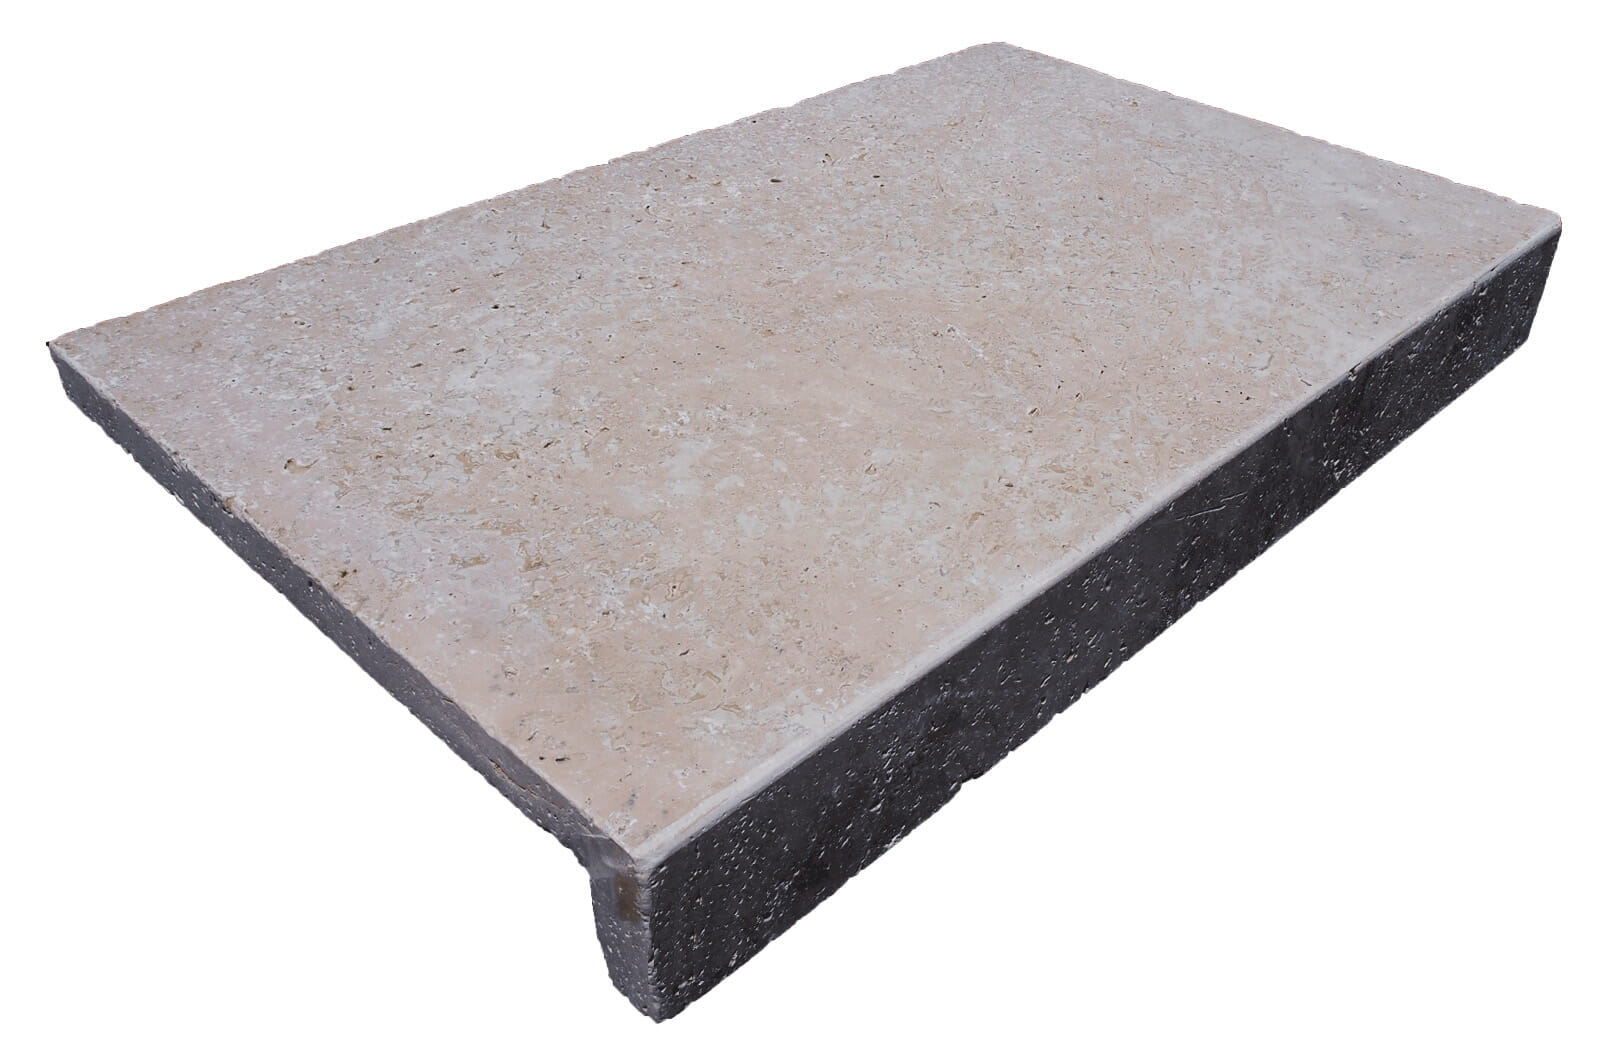 IVORY TRAVERTINE DROP FACE POOL COPING TILE